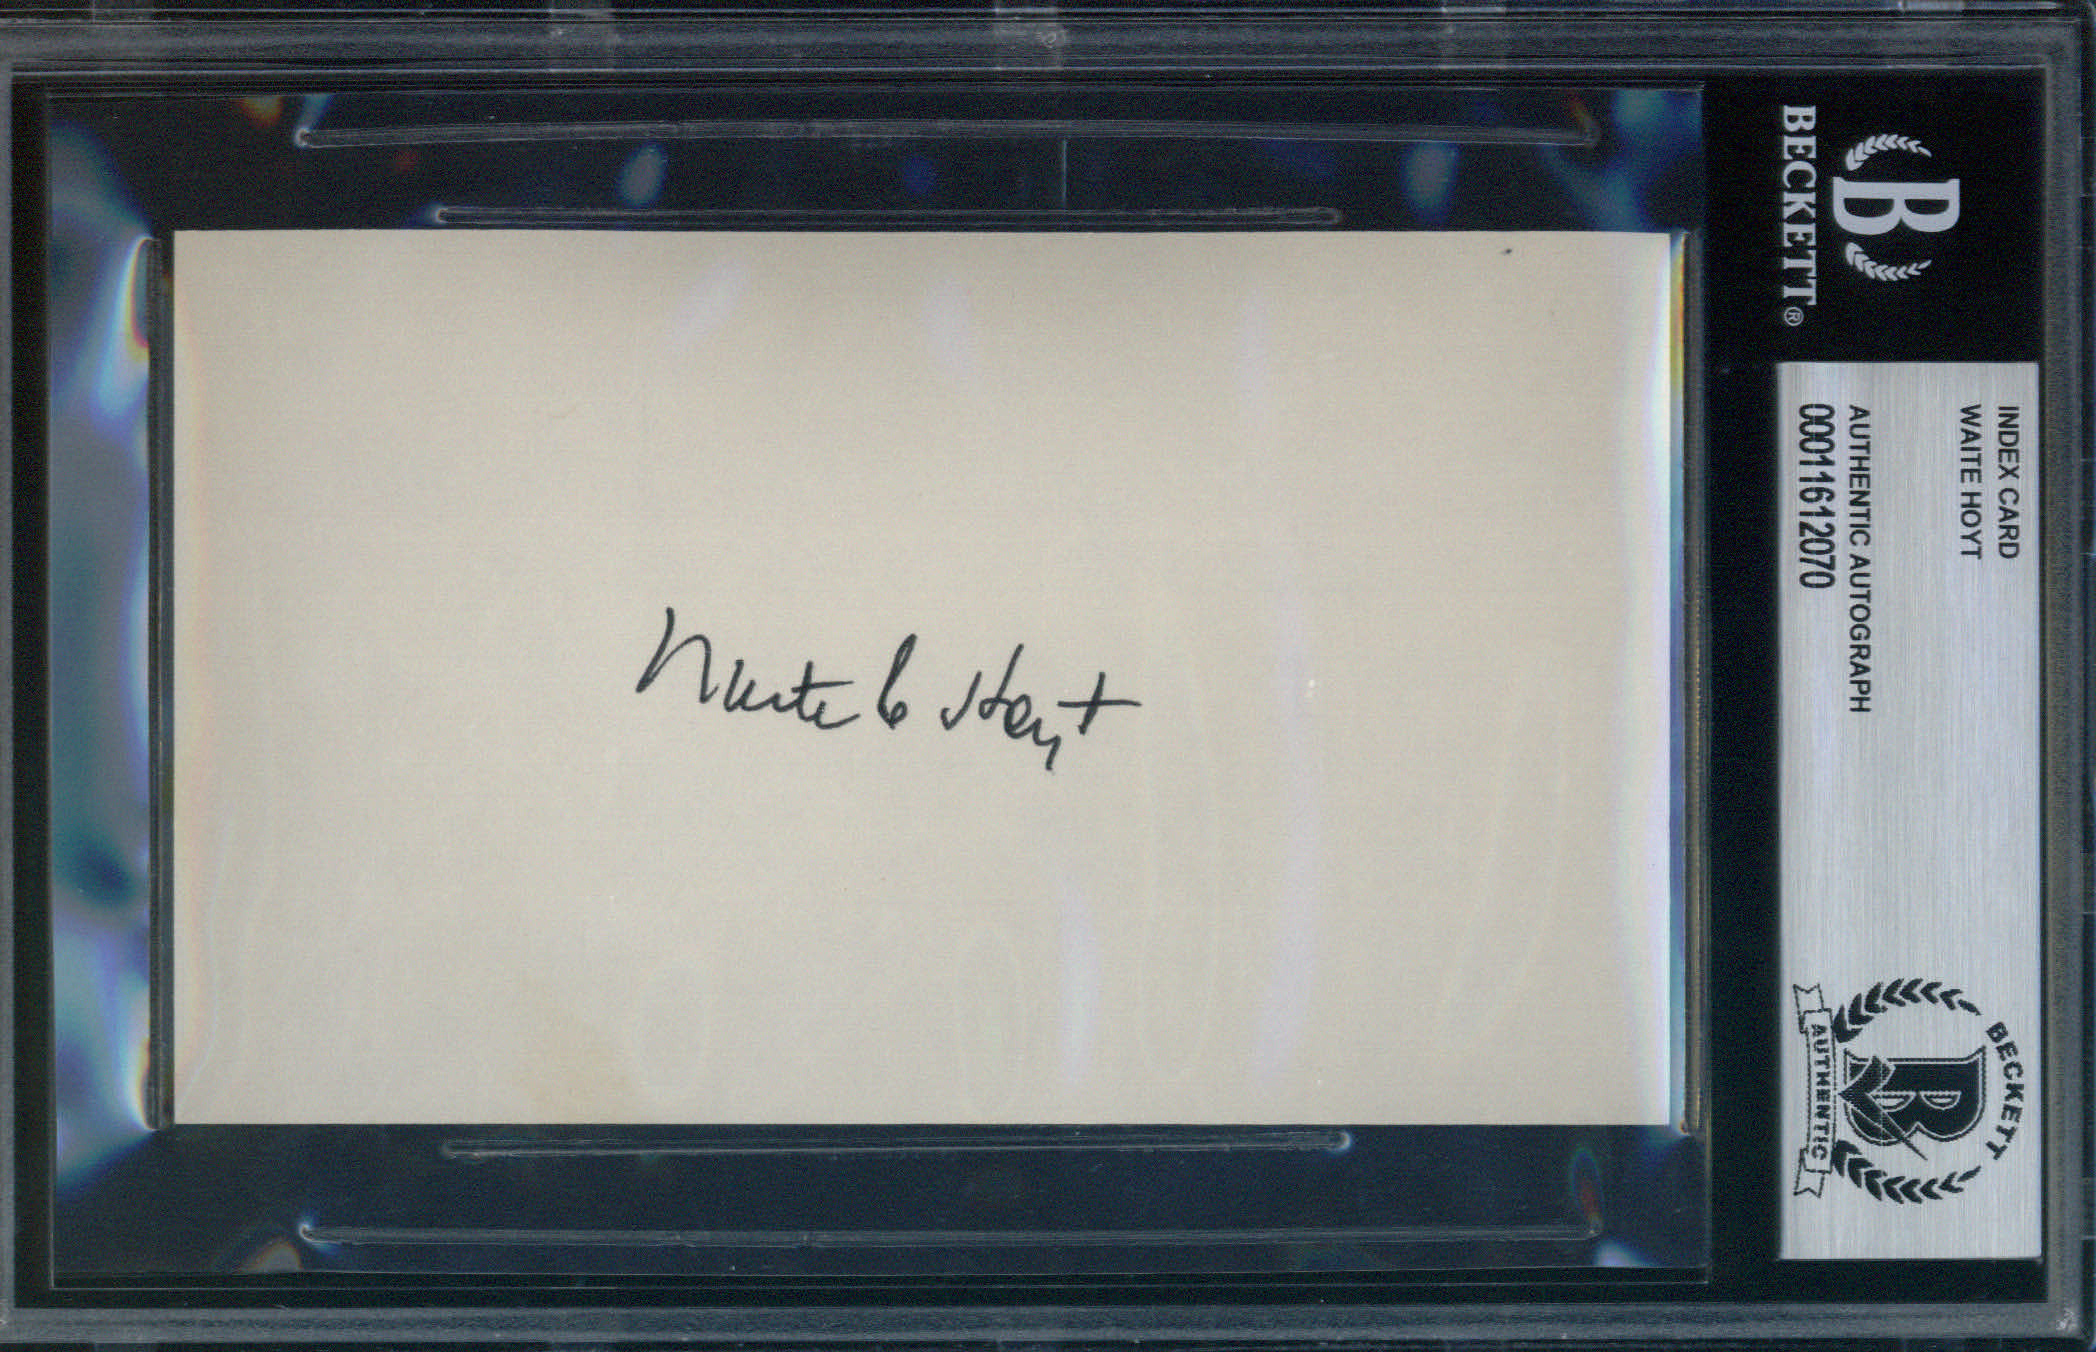 Waite Hoyt Autographed Index Card BAS Authenticated